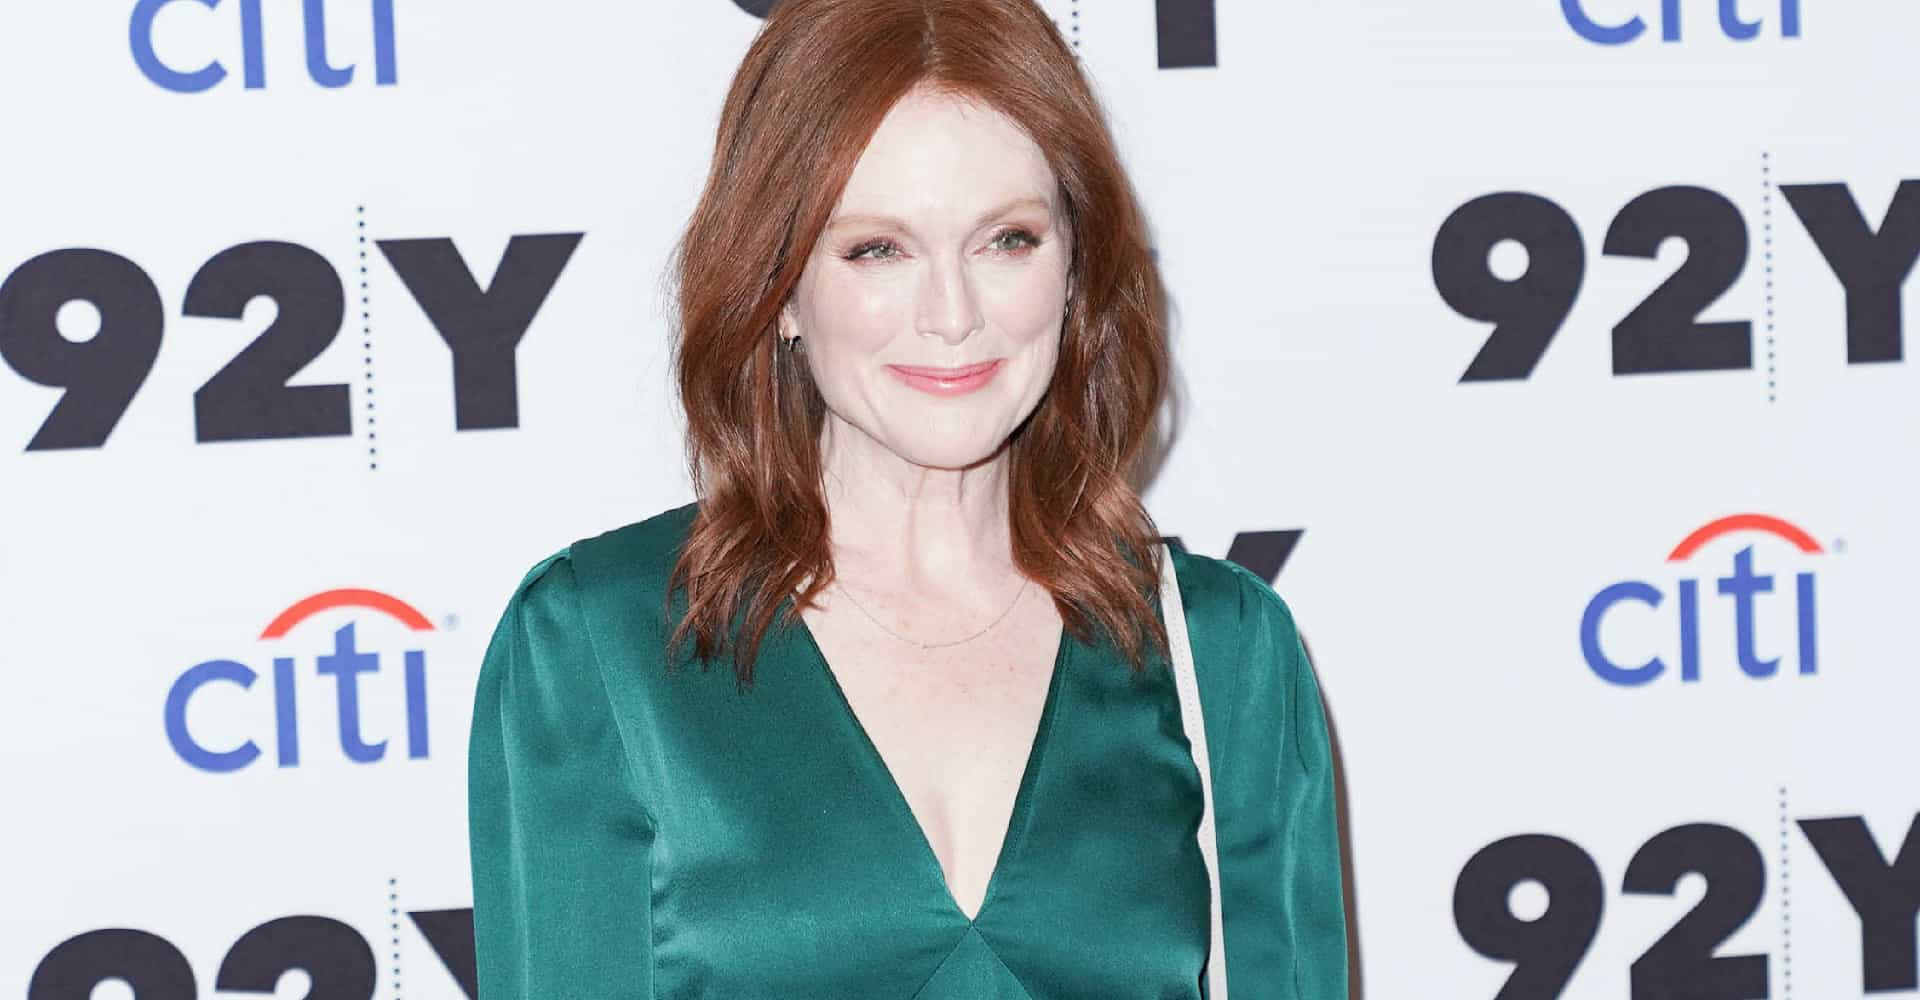 Julianne Moore and other celebs who were fired from hit TV shows